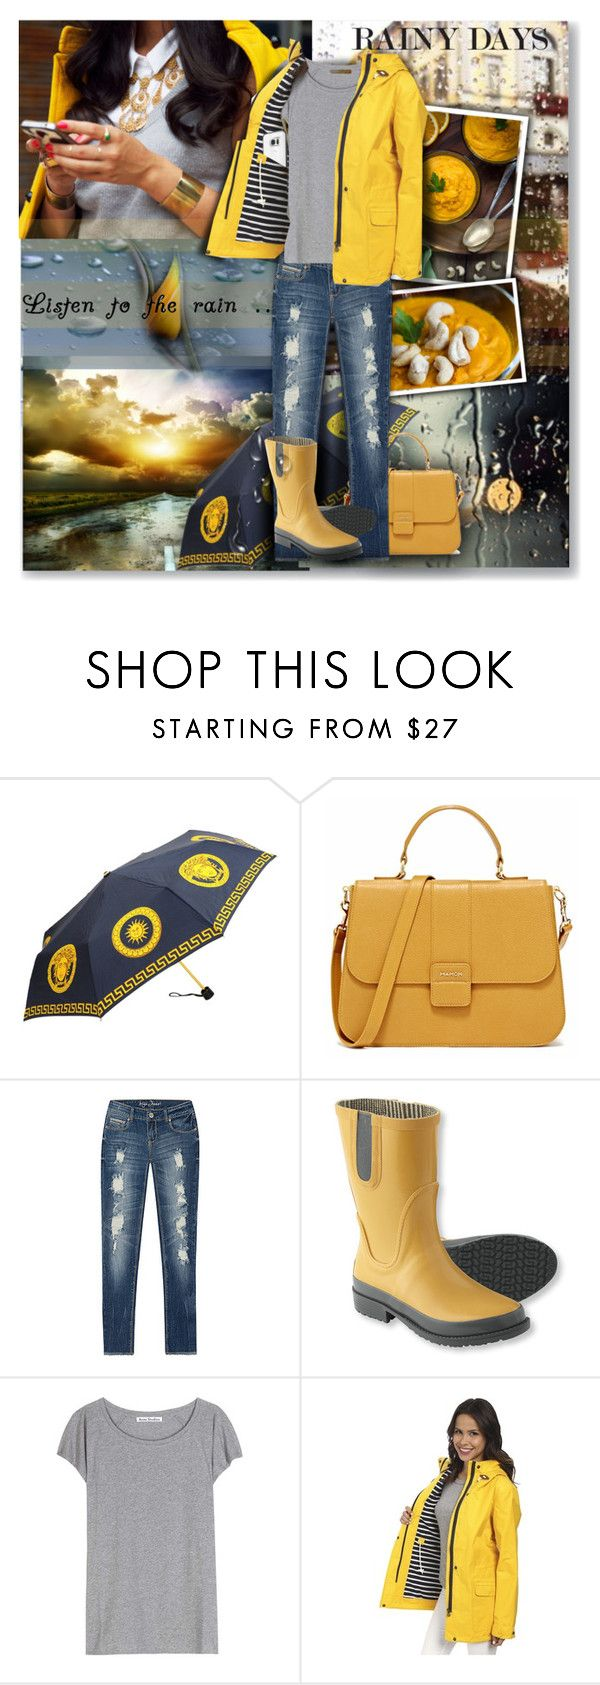 """Listen To The Rain"" by lastchance ❤ liked on Polyvore featuring Versace, L.L.Bean, Acne Studios, Hatley, rain, lastchance and plus size clothing"